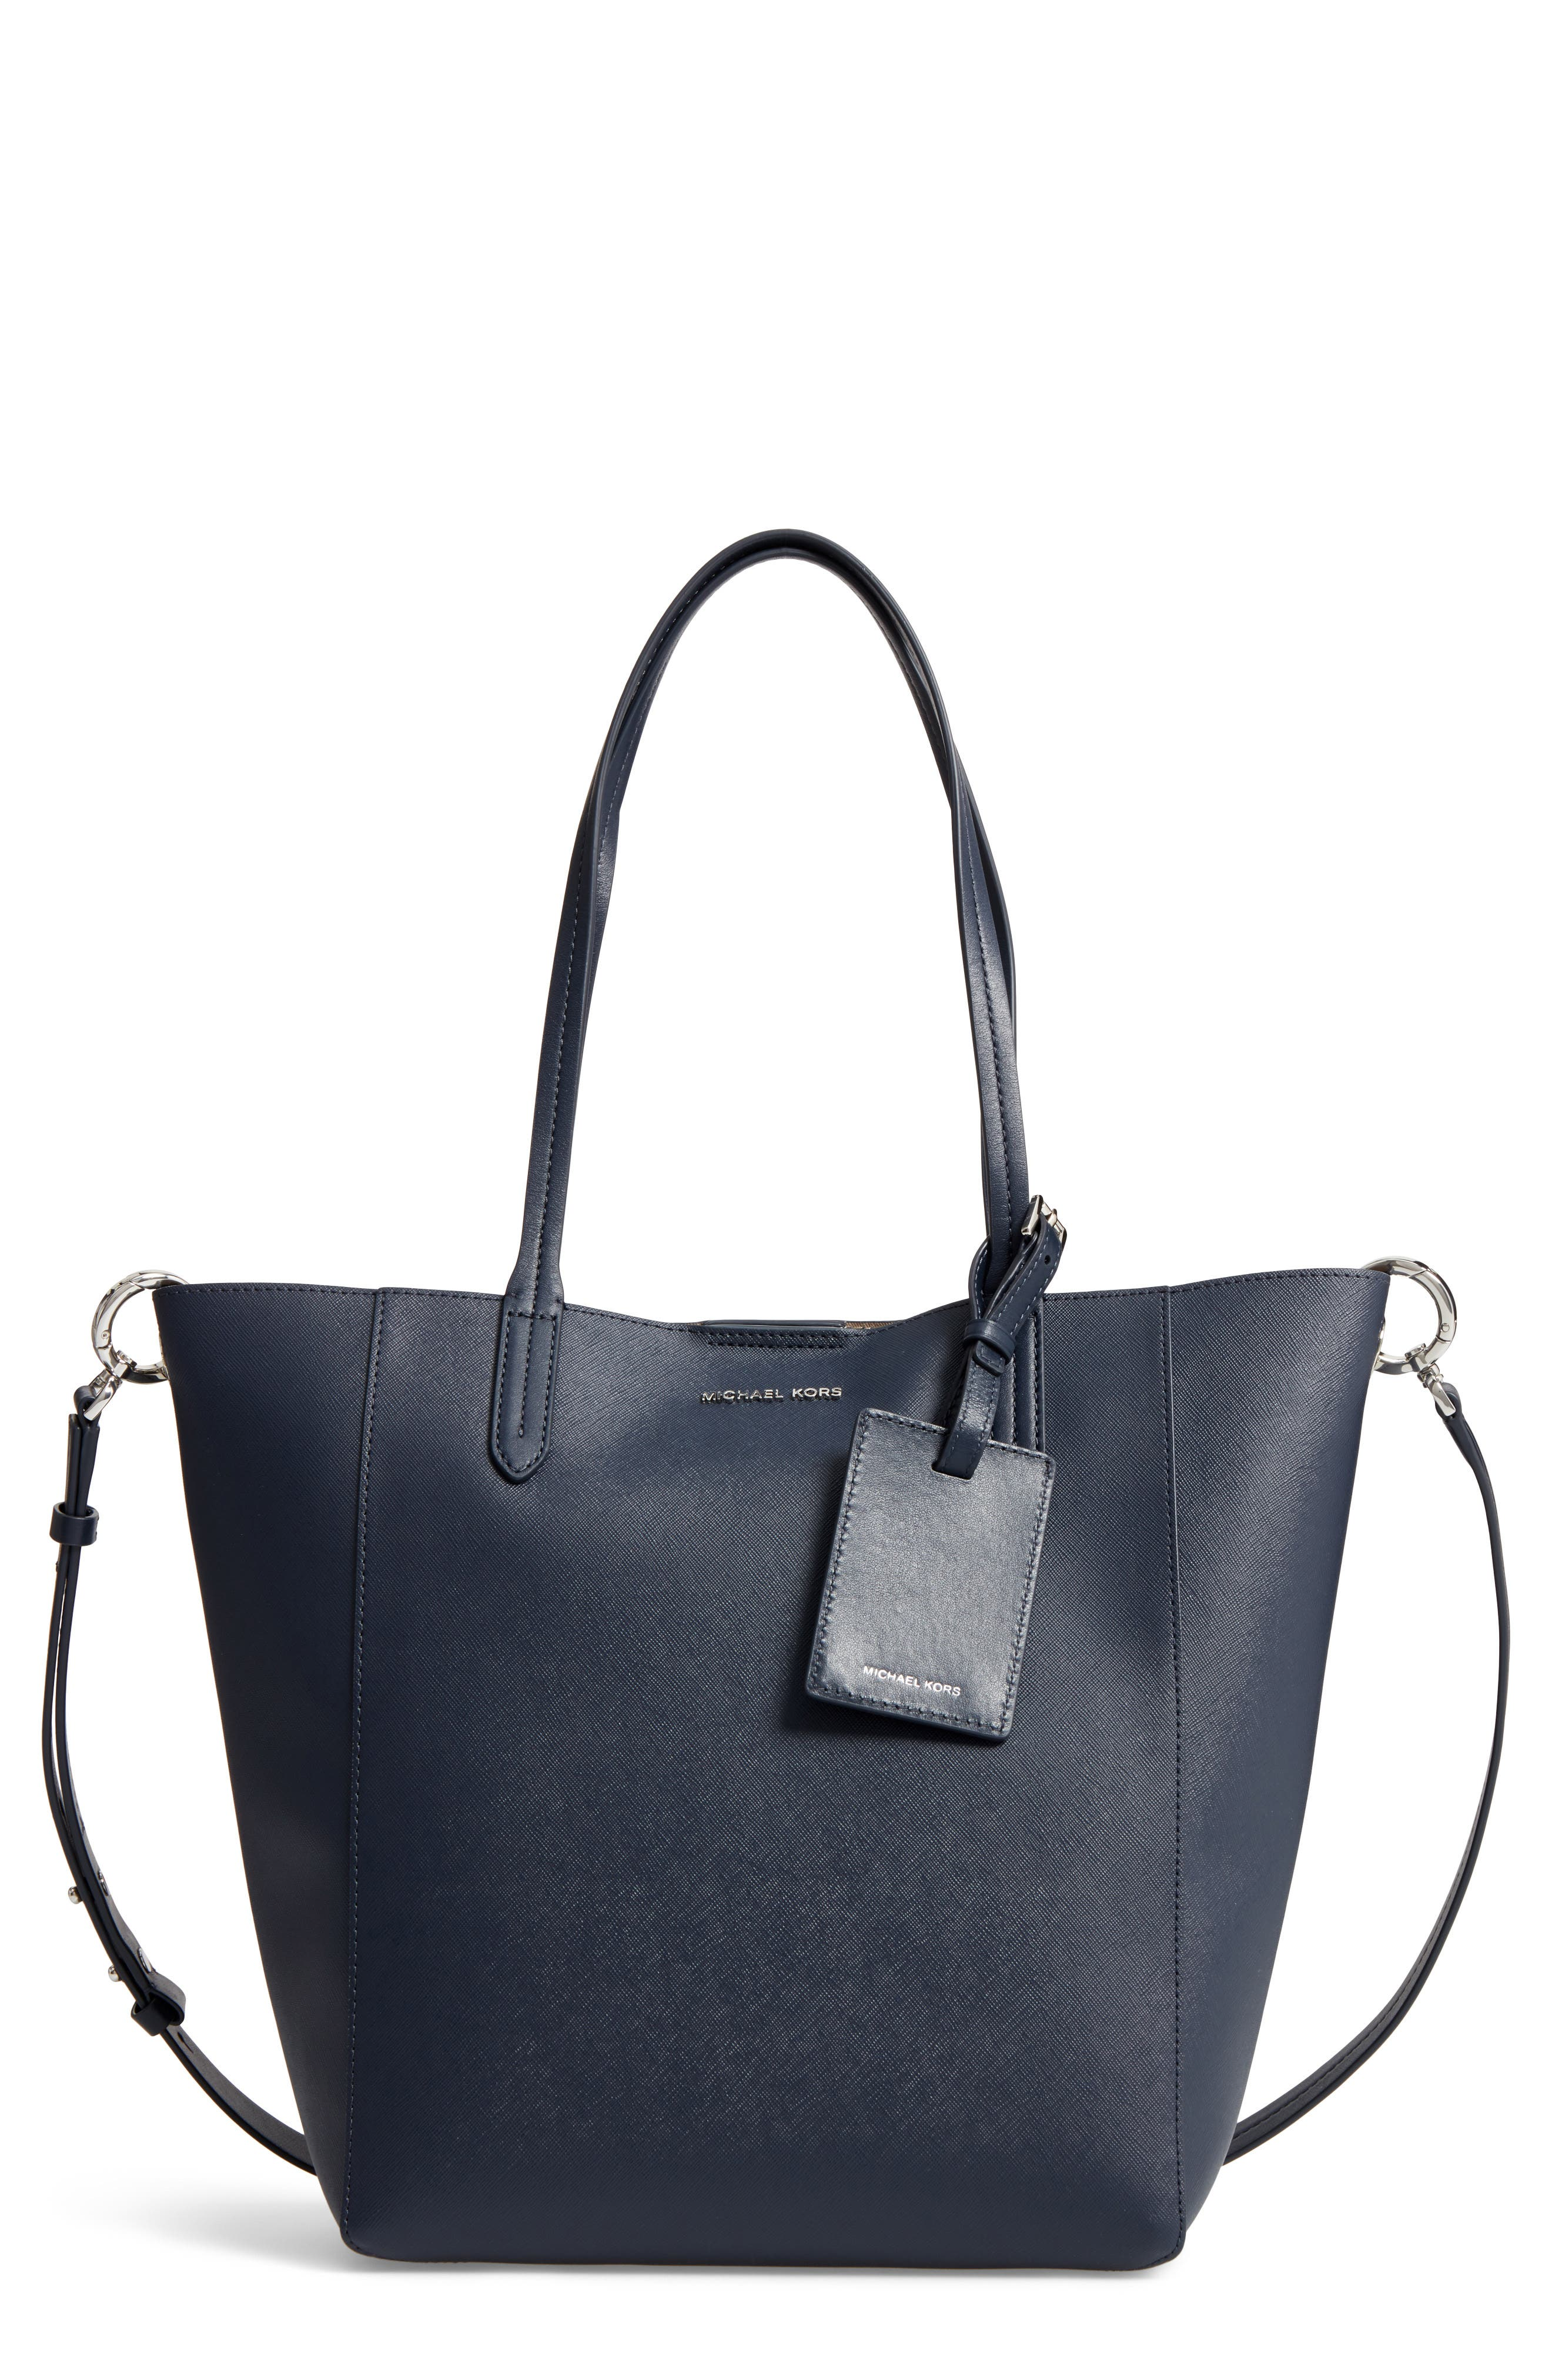 Penny Large Saffiano Convertible Leather Tote, Main, color, 414